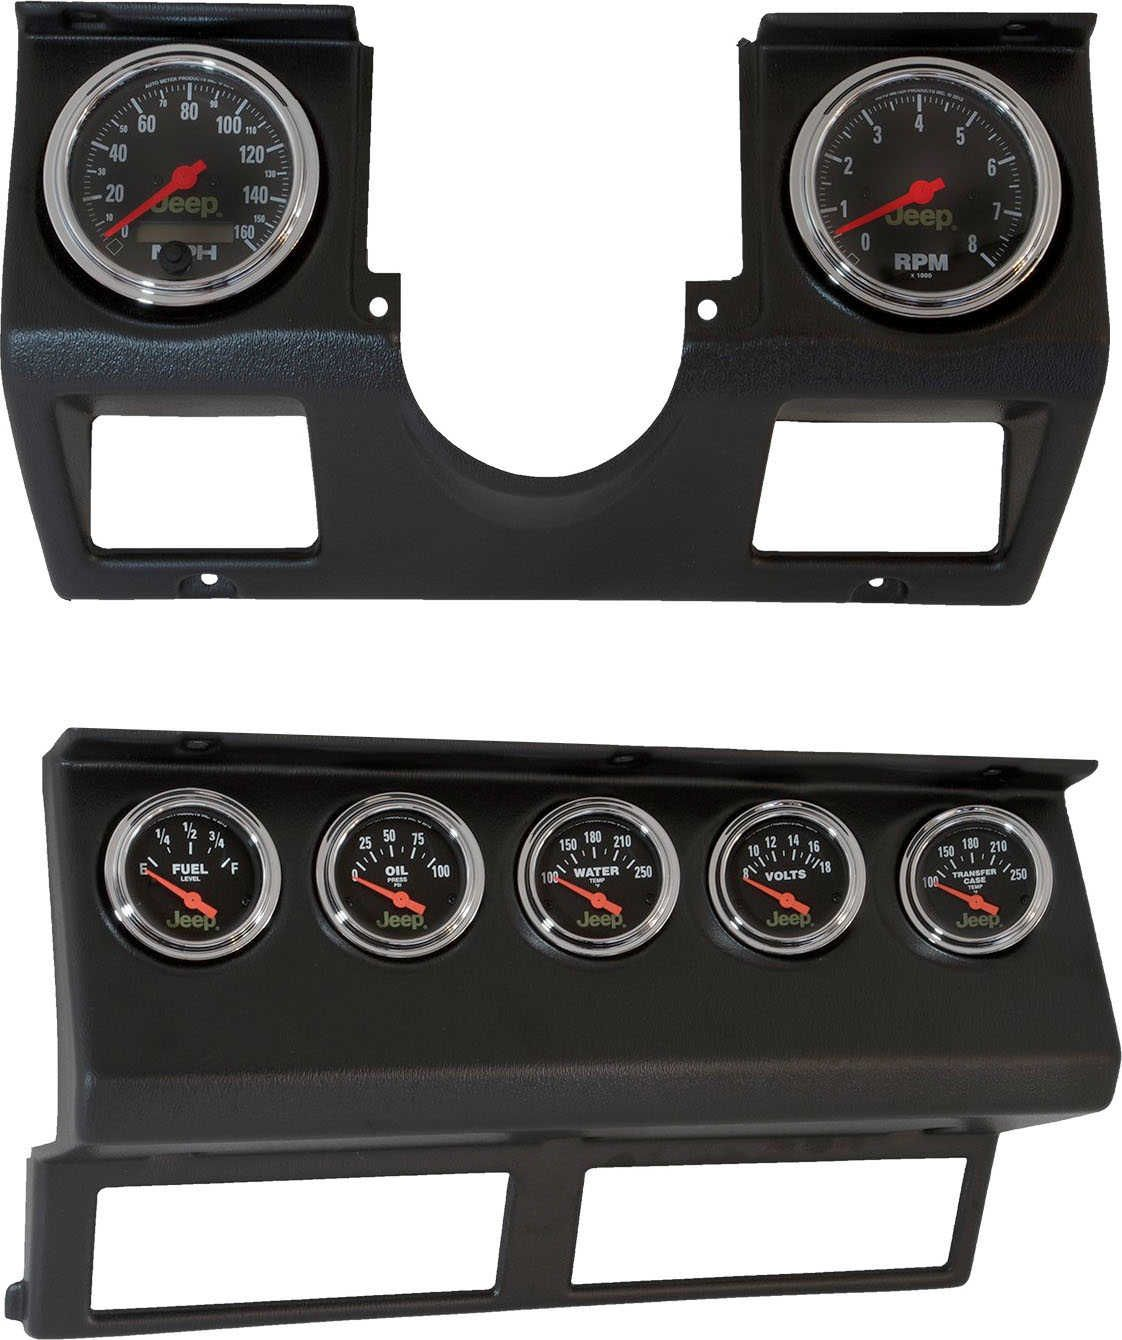 155e4b3b34aa91380a83a7f79f9e1bf0 make gauge installation simple and clean with auto meter's direct